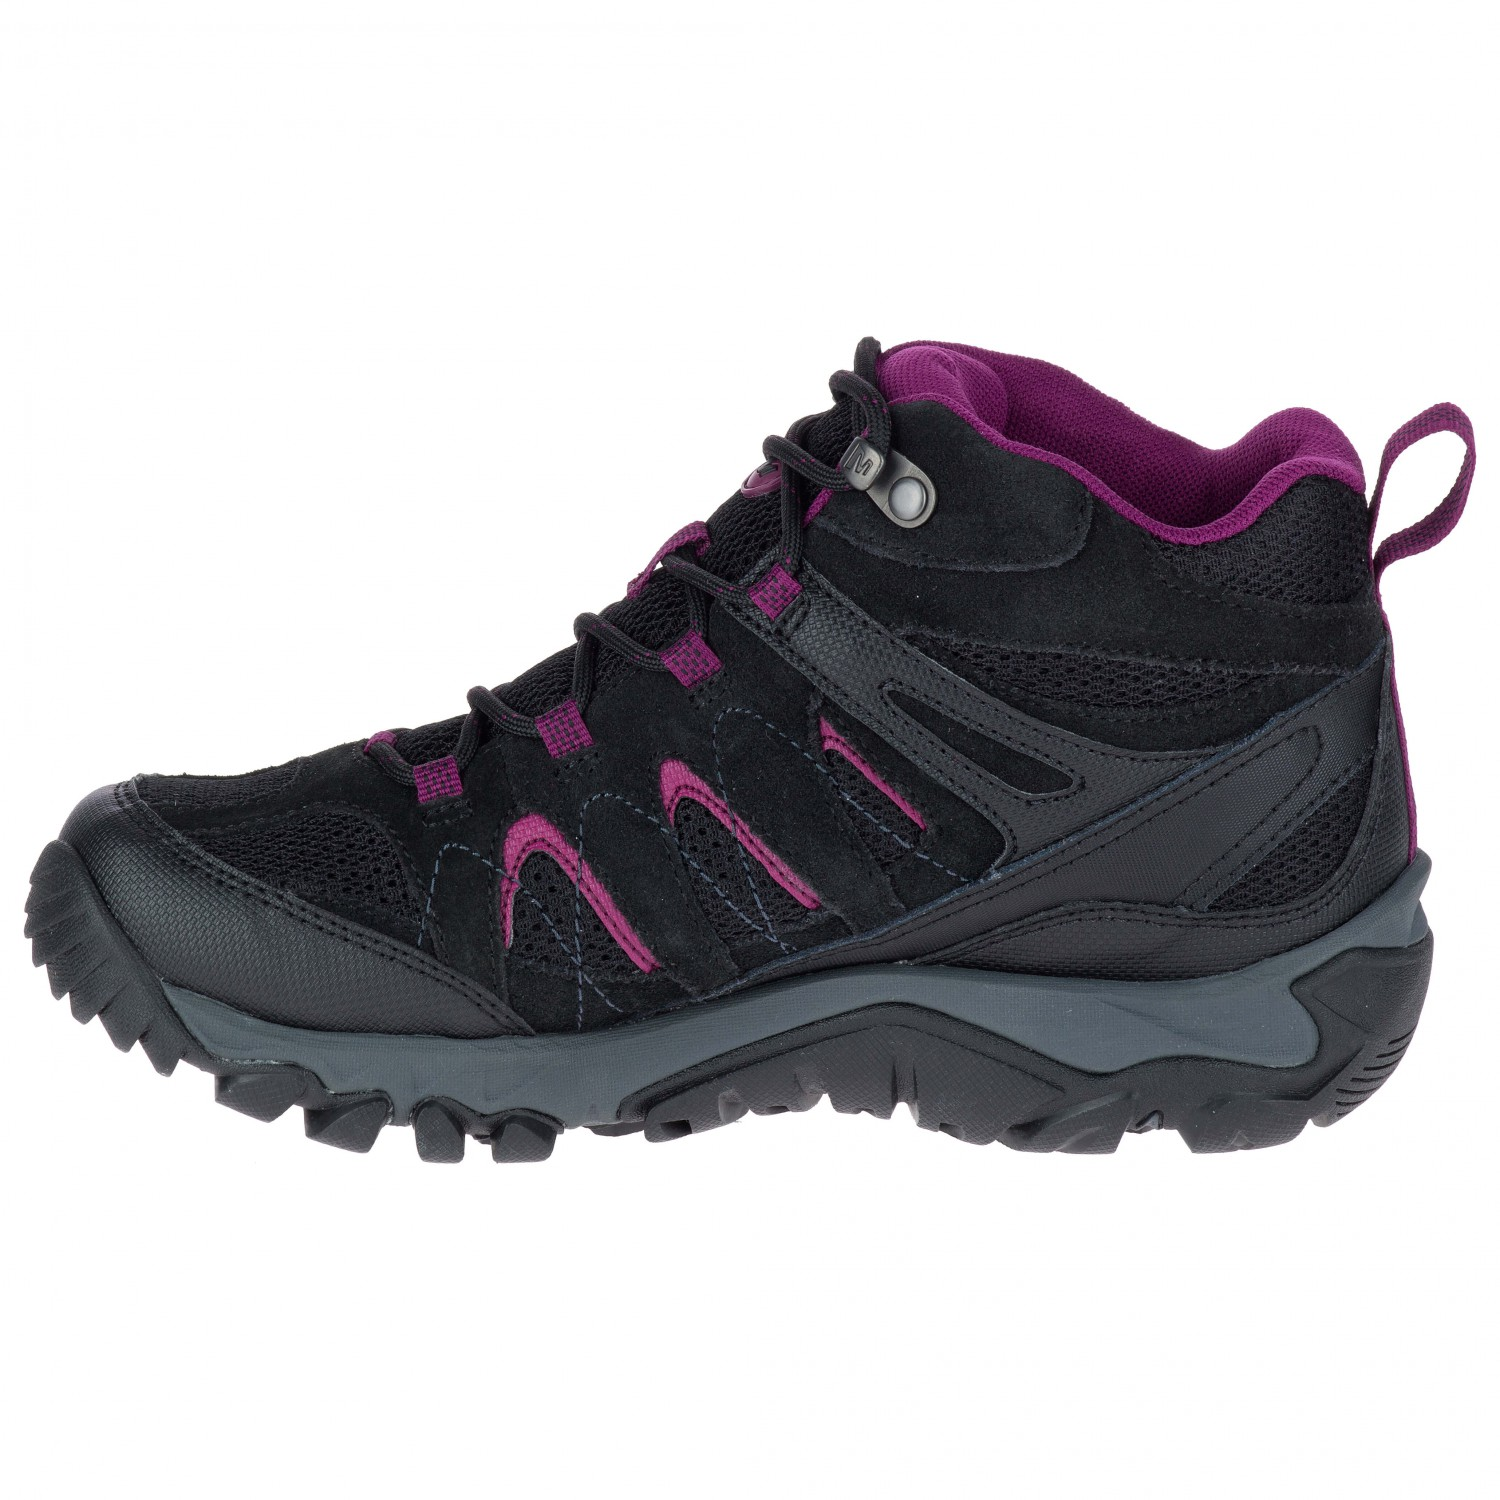 Merrell Azura Waterproof Light Trail Shoes Women